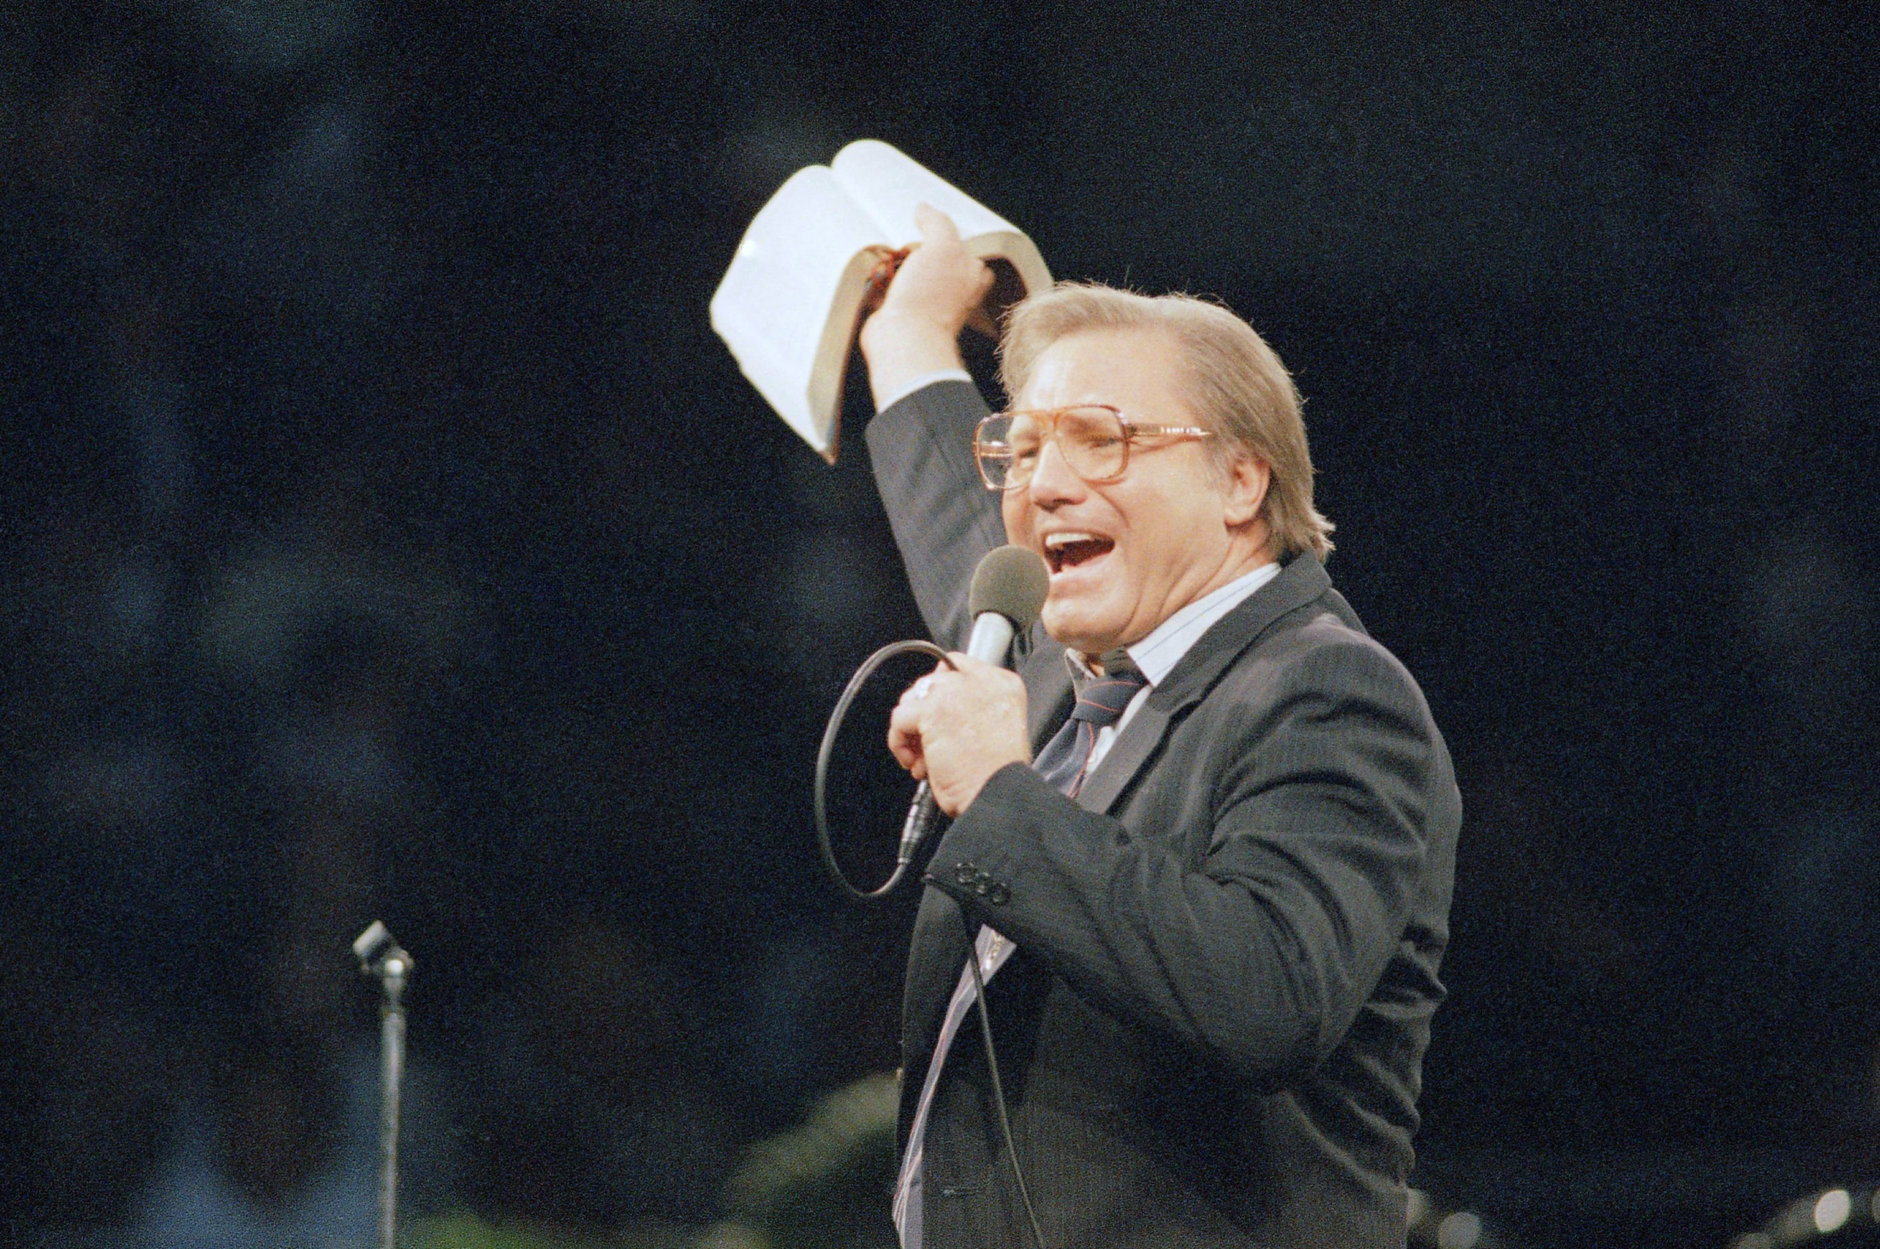 The Rev. Jimmy Swaggart gestures with the bible as spread the word of the Lord to the 14,000 faithful that packed the Los Angeles Sports Arena during his Los Angeles Crusade, Sunday, March 30, 1987. (AP Photo/Mark Avery)